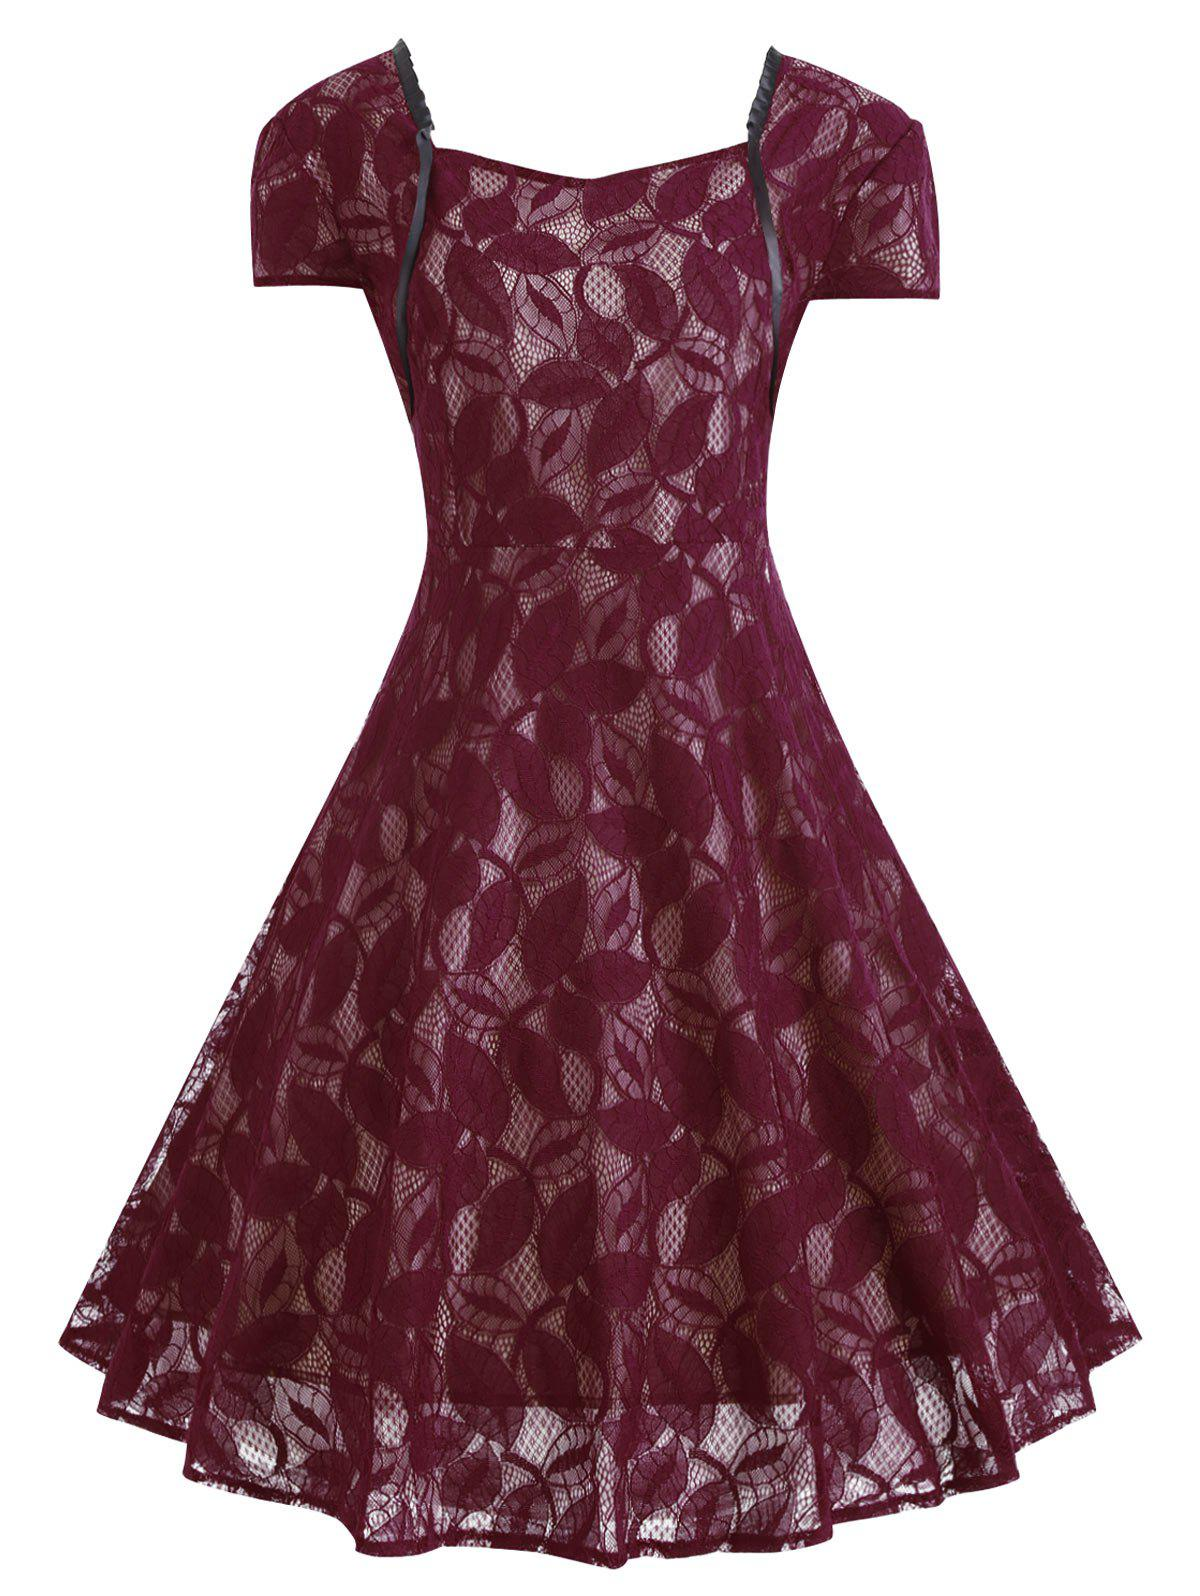 Plus Size V Back Lace Midi Vintage Party DressWOMEN<br><br>Size: XL; Color: WINE RED; Style: Vintage; Material: Lace,Polyester; Silhouette: Ball Gown; Dresses Length: Mid-Calf; Neckline: Sweetheart Neck; Sleeve Type: Cap Sleeve; Sleeve Length: Short Sleeves; Waist: High Waisted; Embellishment: Vintage; Pattern Type: Solid Color; With Belt: No; Season: Fall,Winter; Weight: 0.4300kg; Package Contents: 1 x Dress;